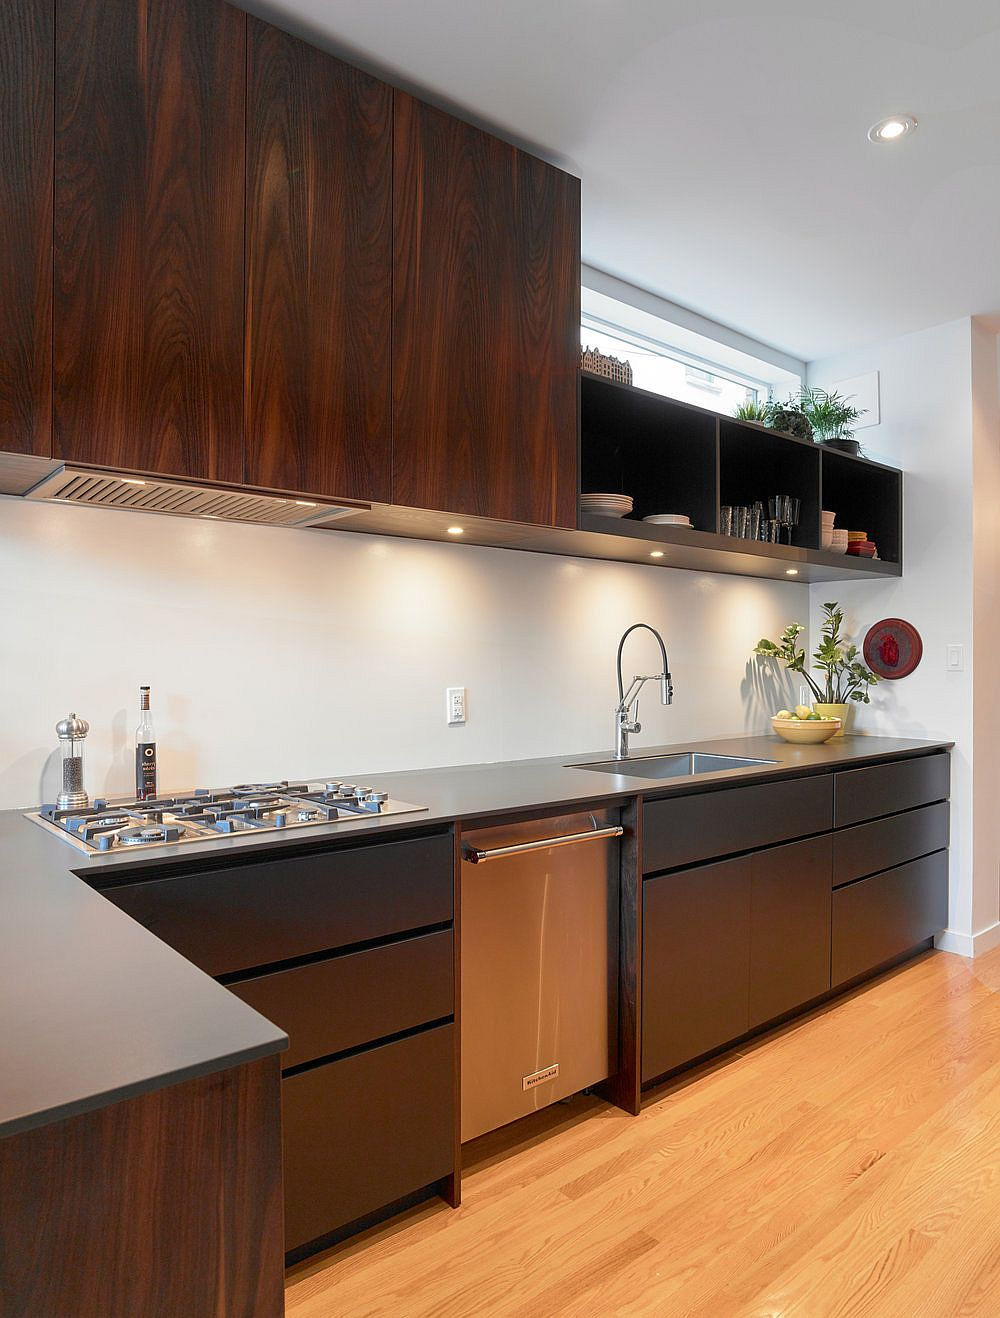 Combination-of-closed-and-open-wooden-shelves-in-the-modern-kitchen-72473